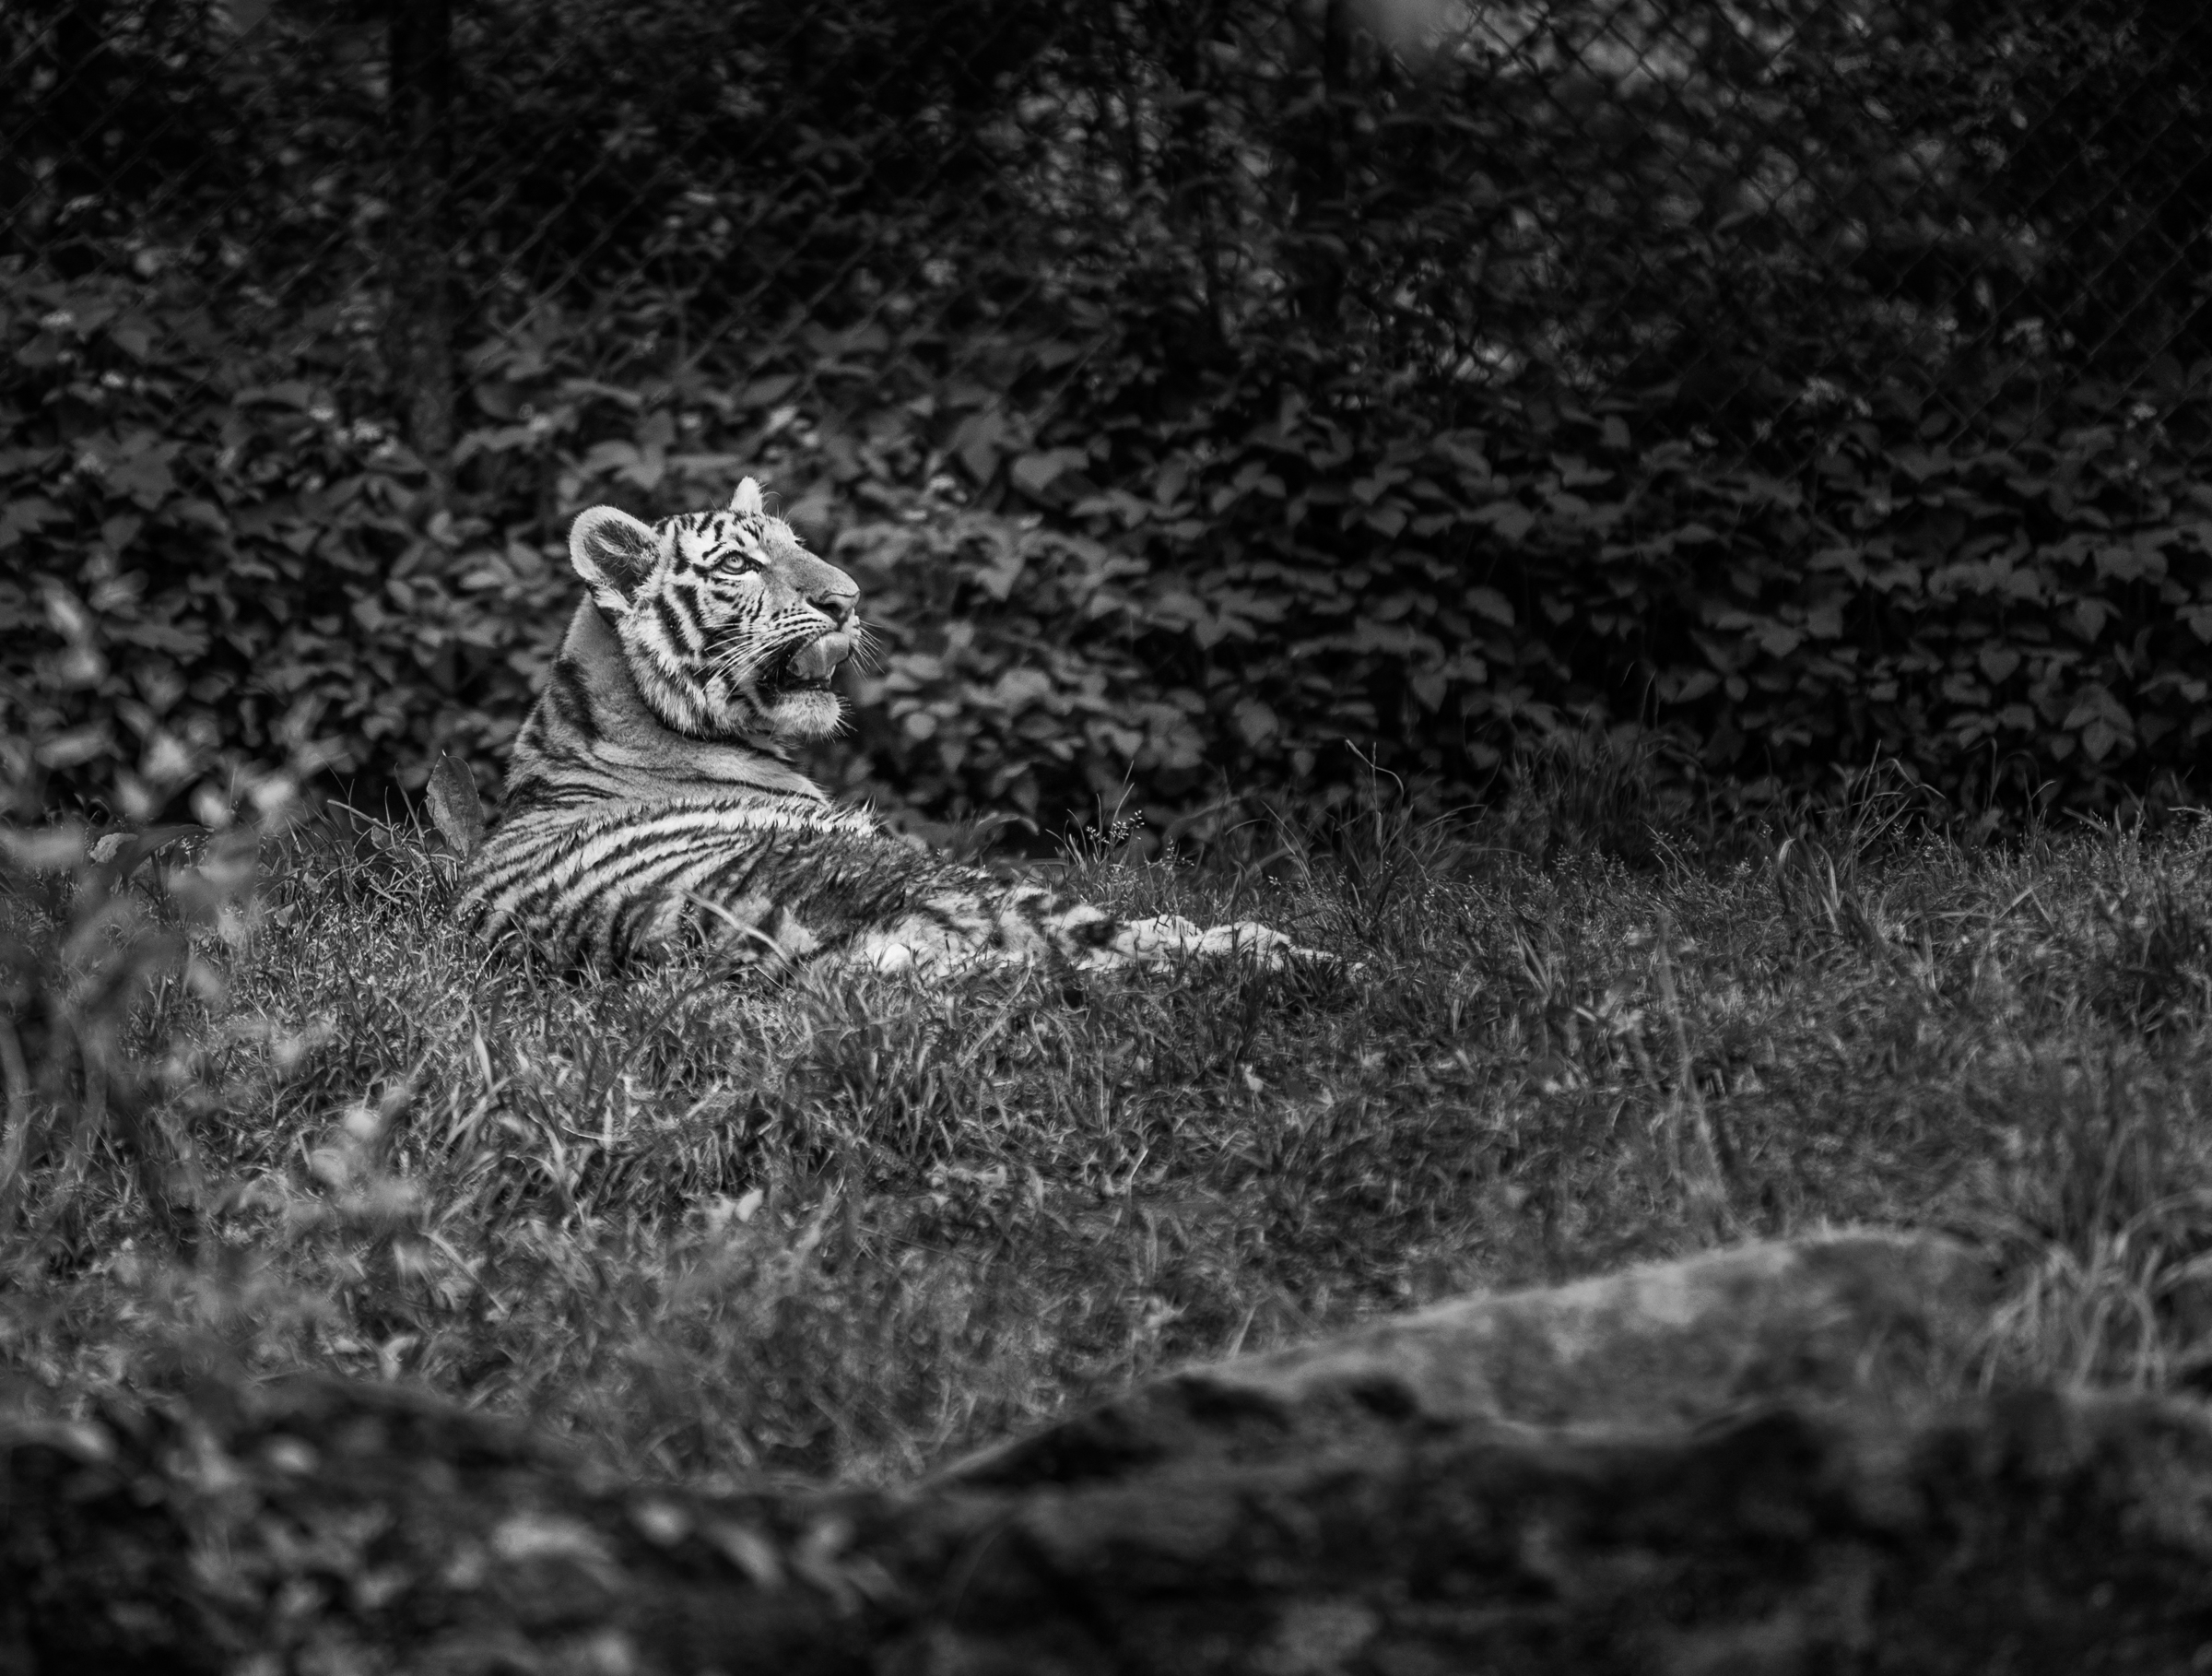 I hope you enjoy the pittsburgh zoo in black and white